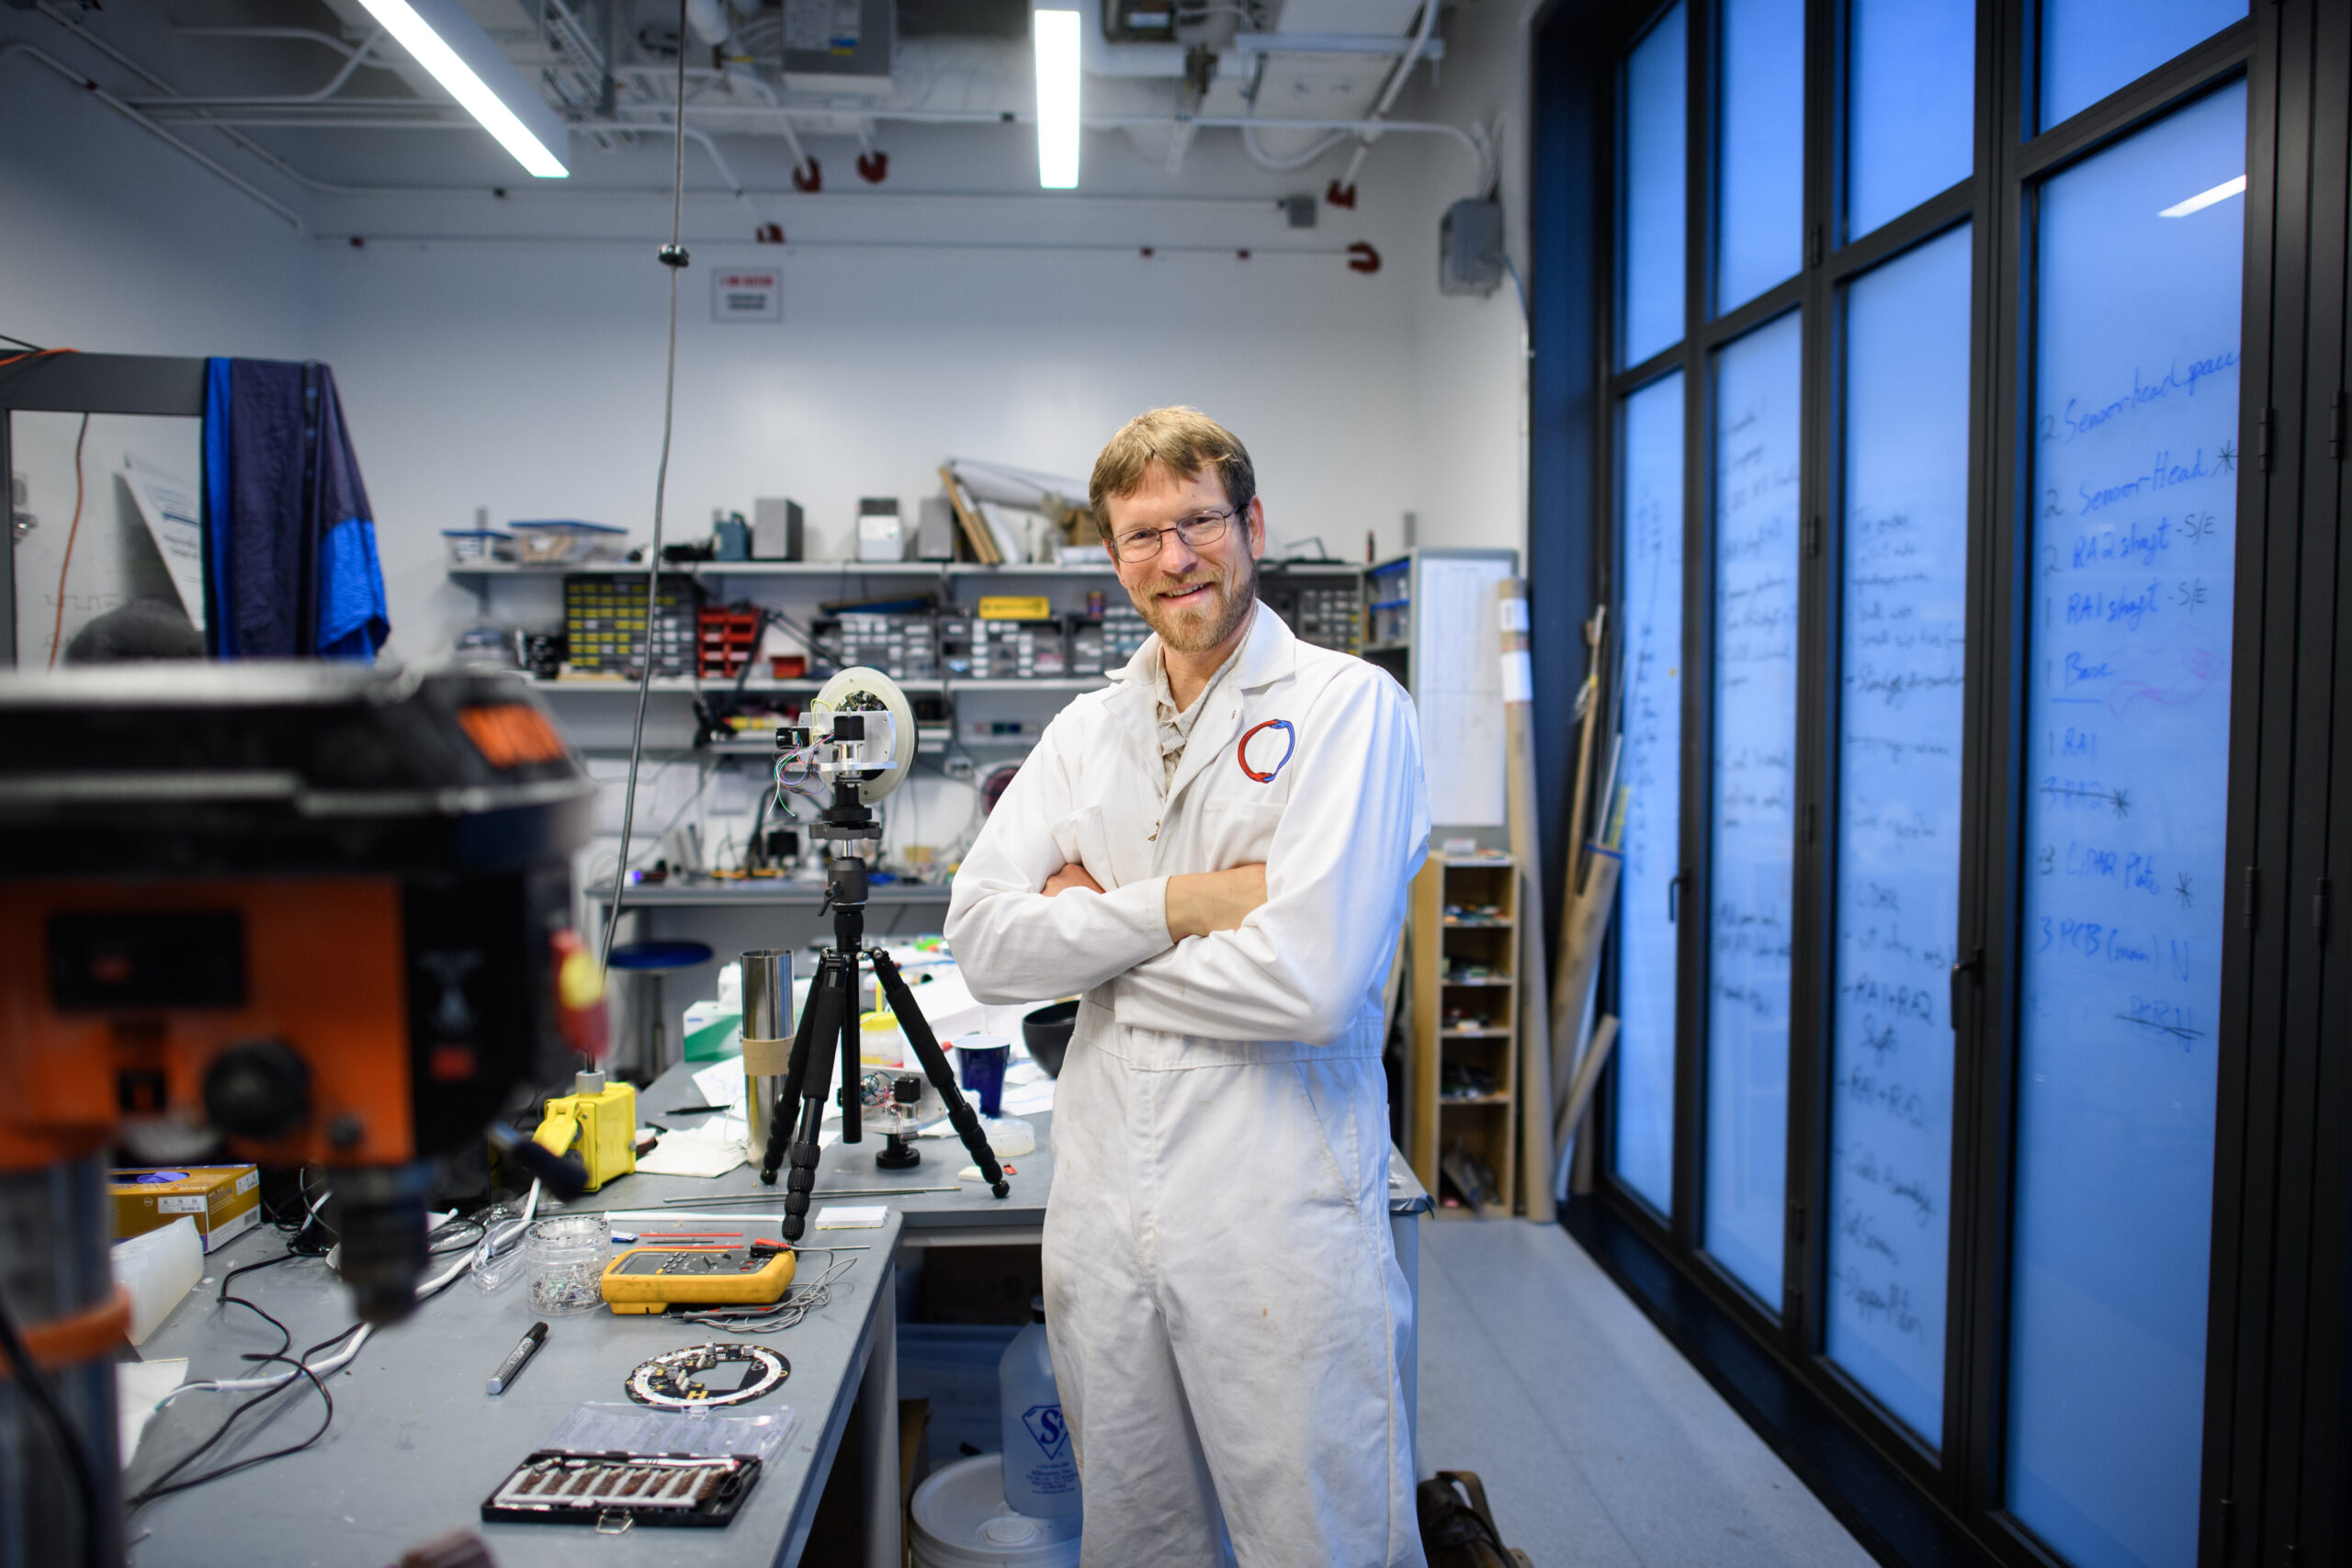 Forrest Meggers at his lab at the Andlinger Center. (Photo by Sameer A. Khan / Fotobuddy)